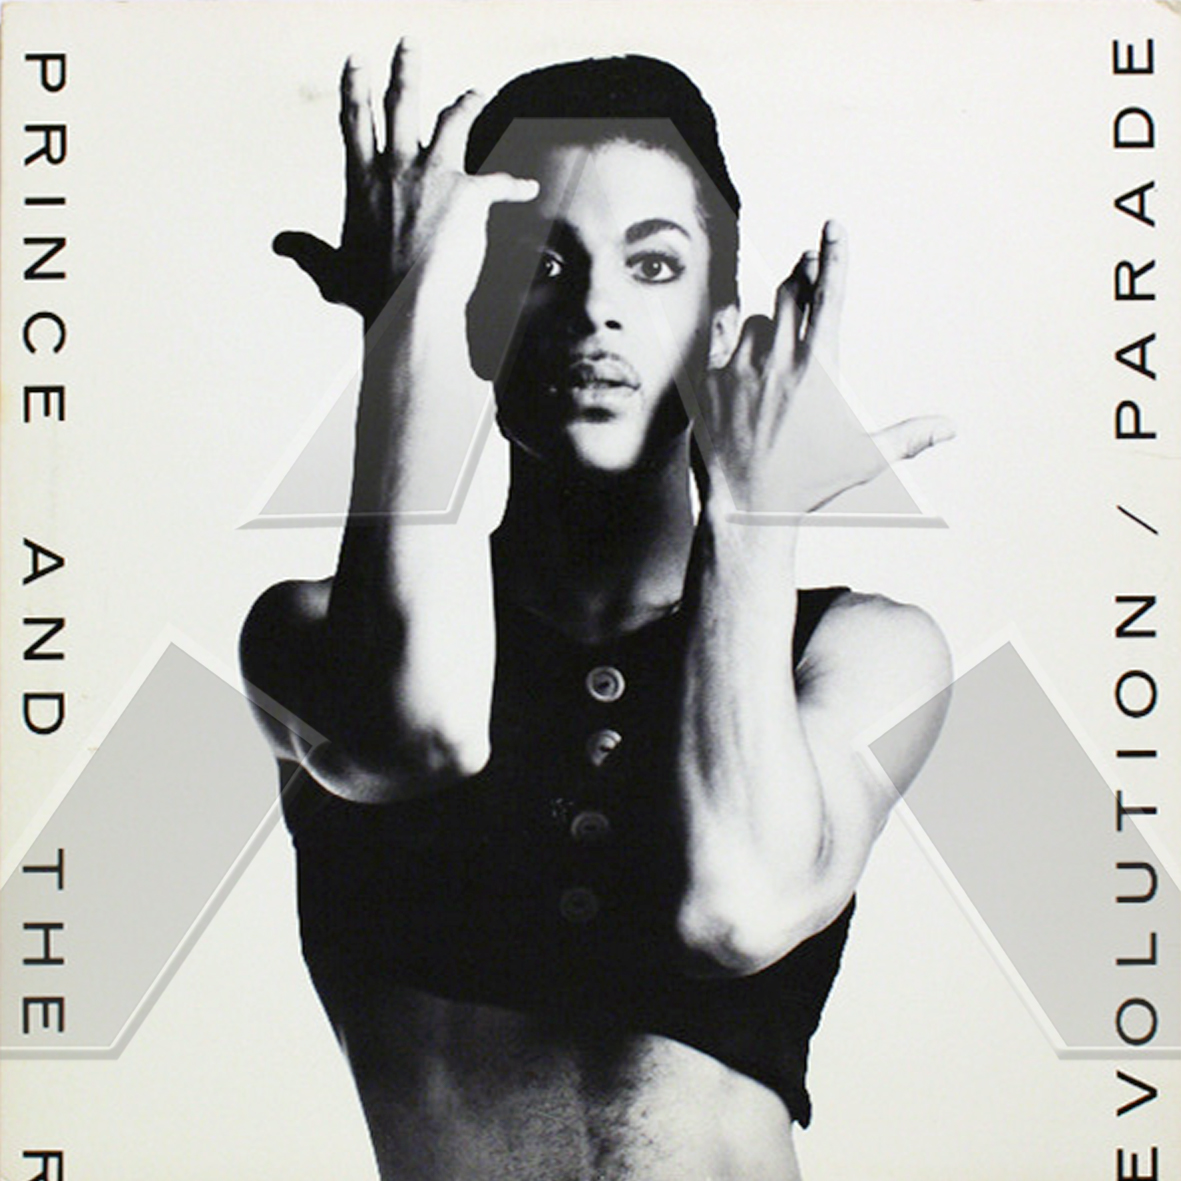 Prince and the Revolution ★ Parade (vinyl album US)